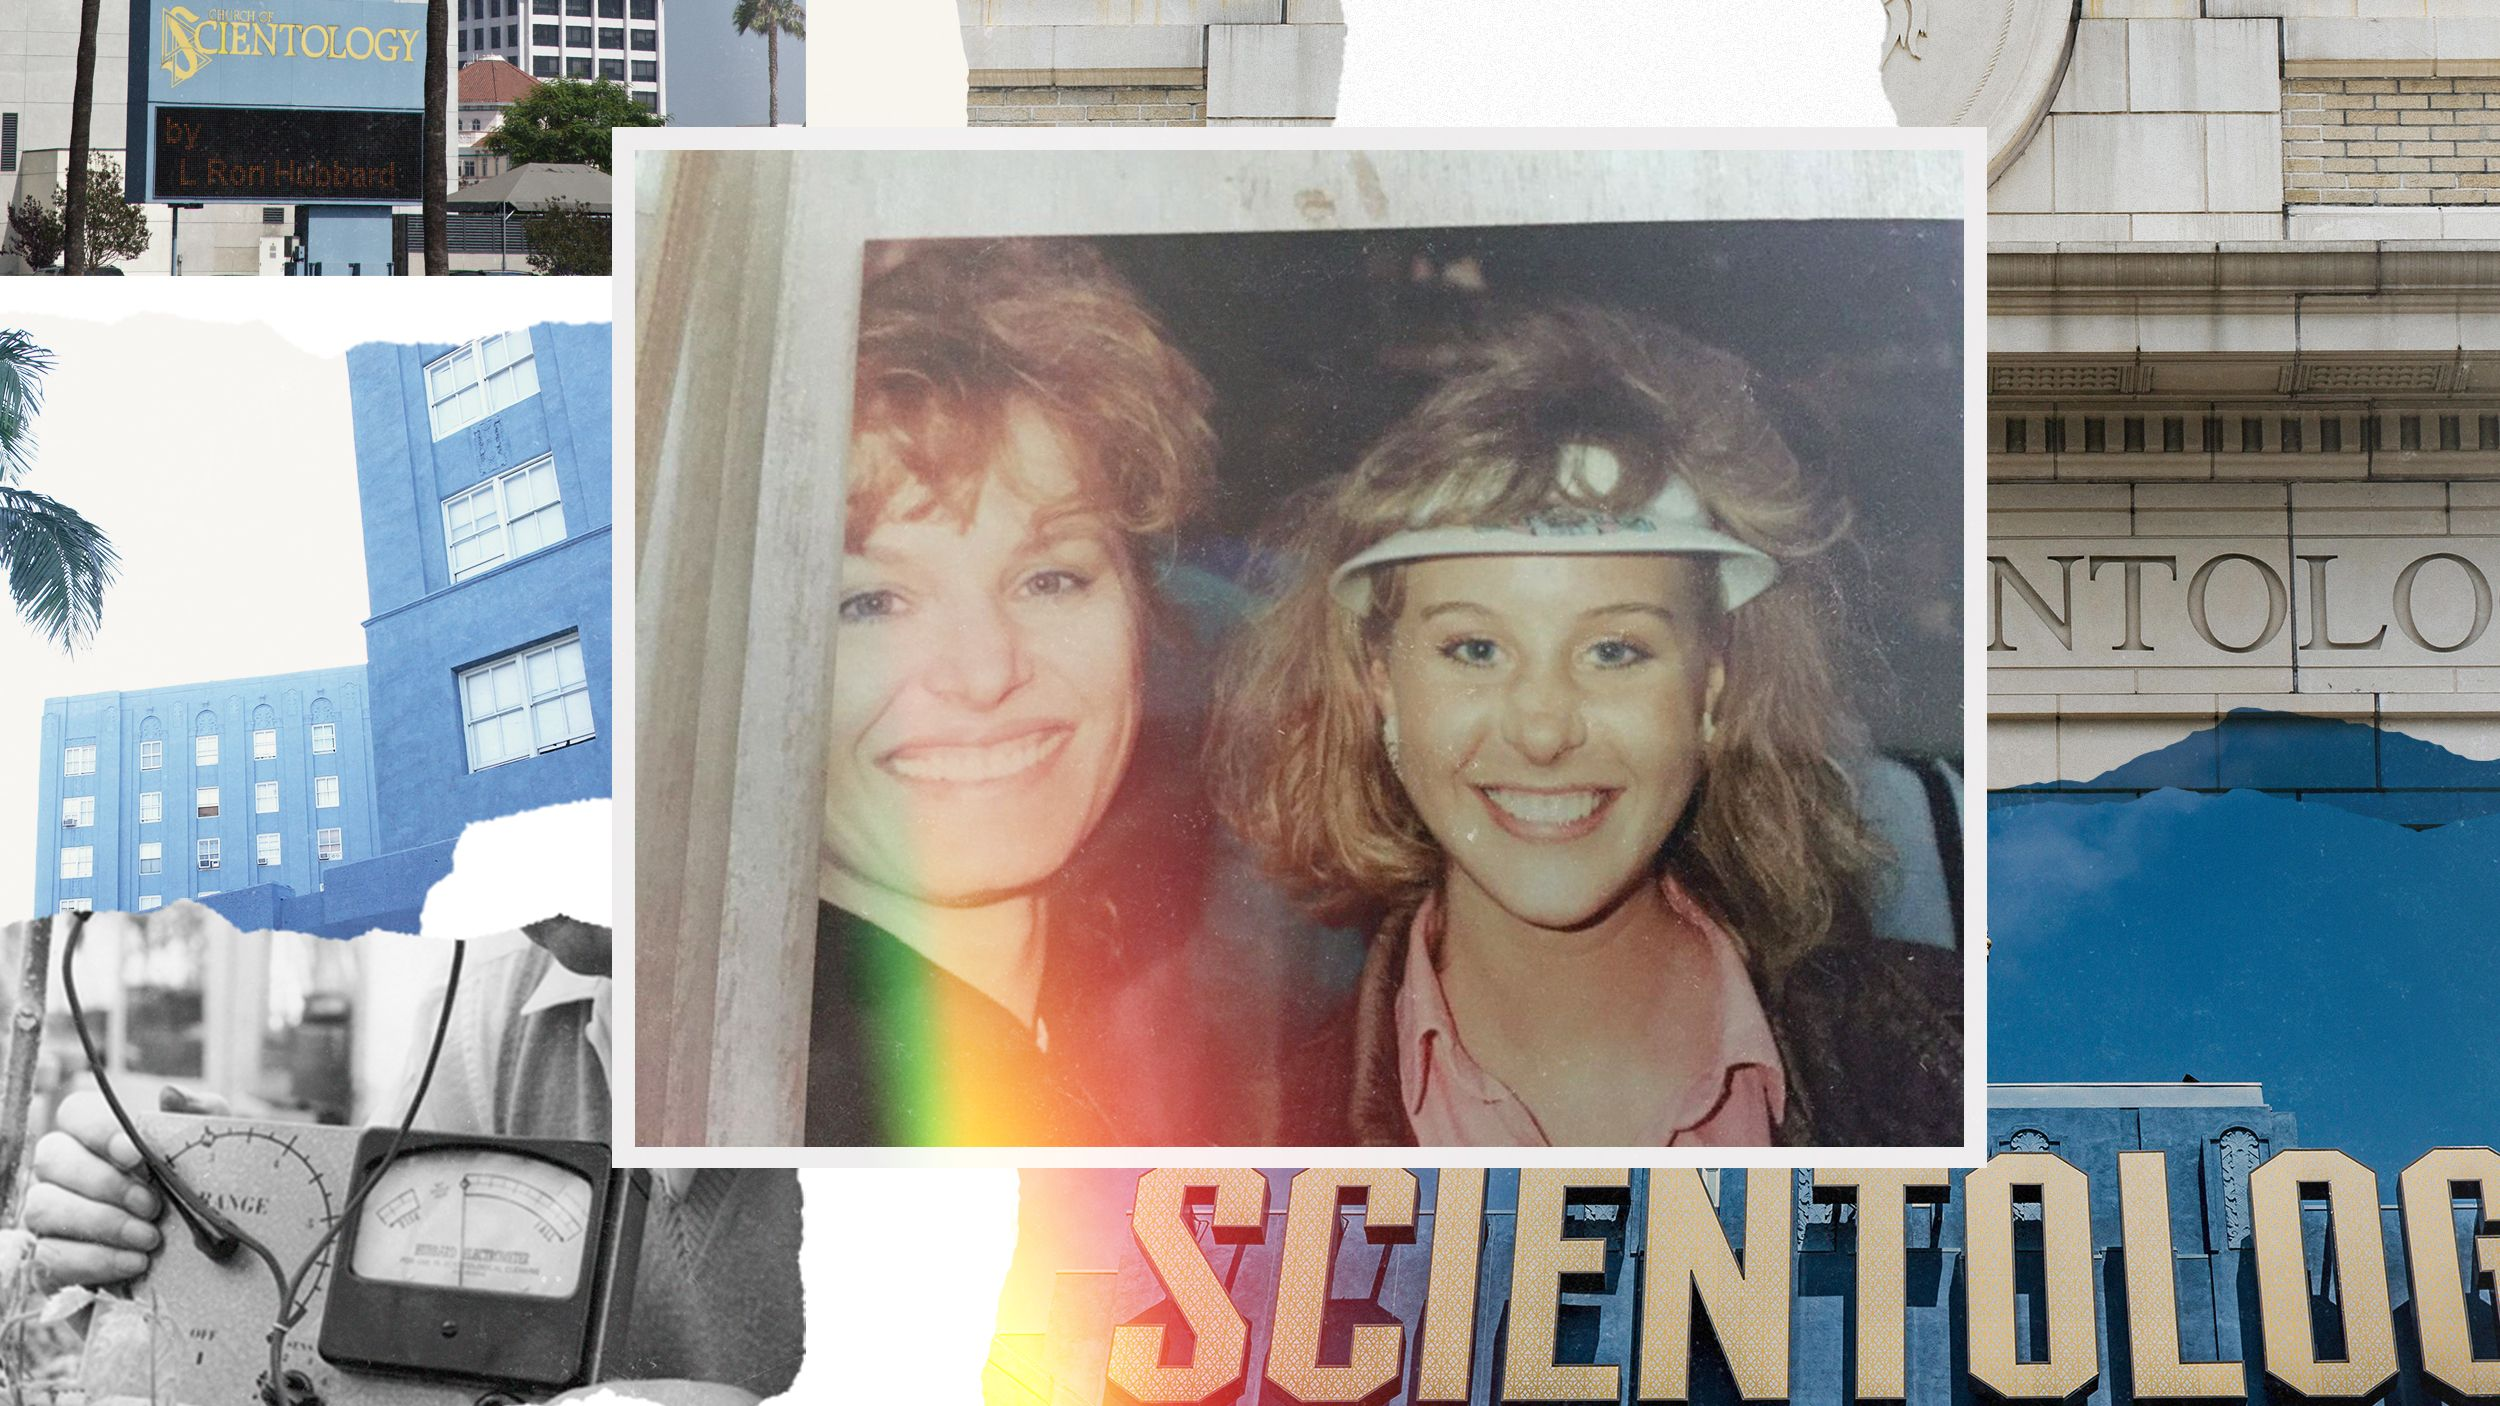 Link between scientology and homosexuality